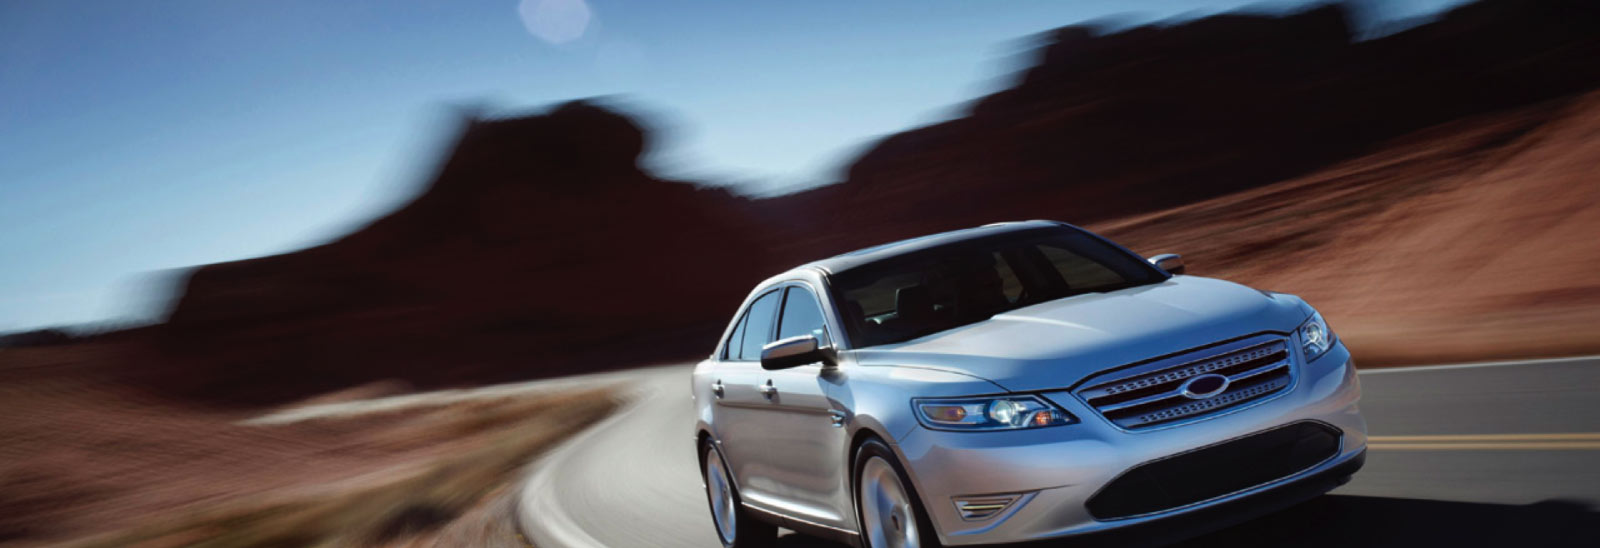 2010_ford_taurus_sho_new_fr1-1600x548